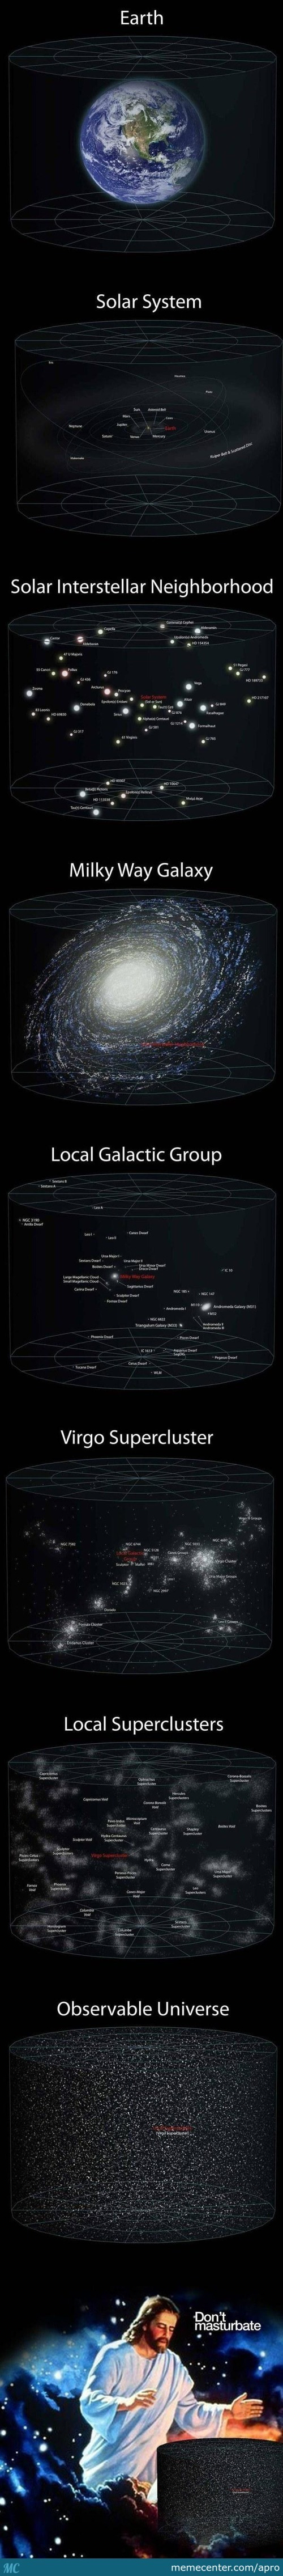 The Universe – Putting Things Into Perspective